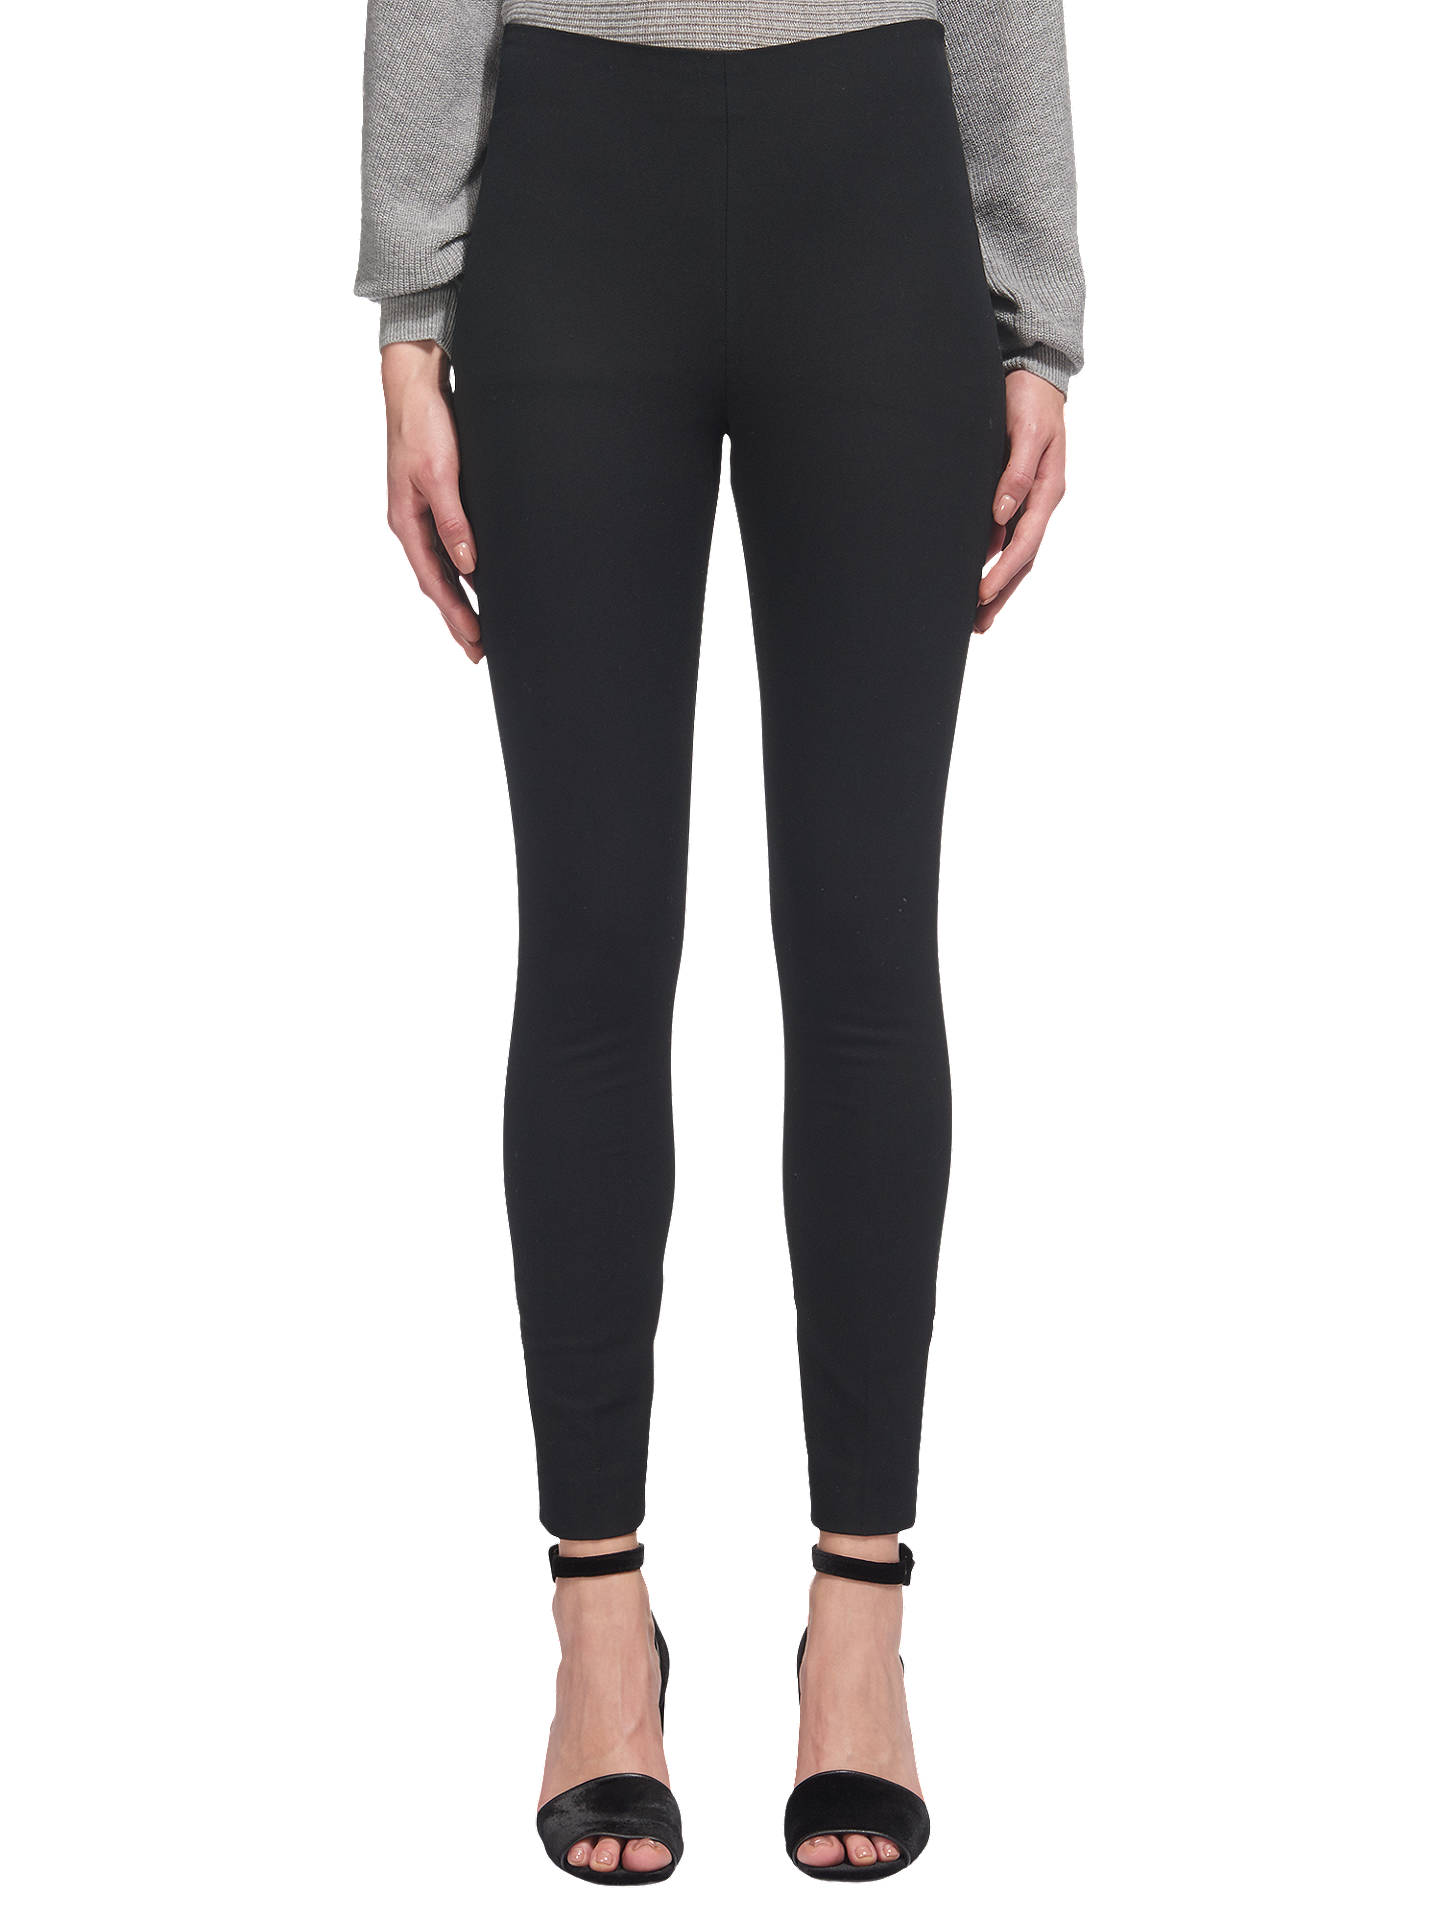 Whistles Super Stretch Trousers, Black. by Whistles